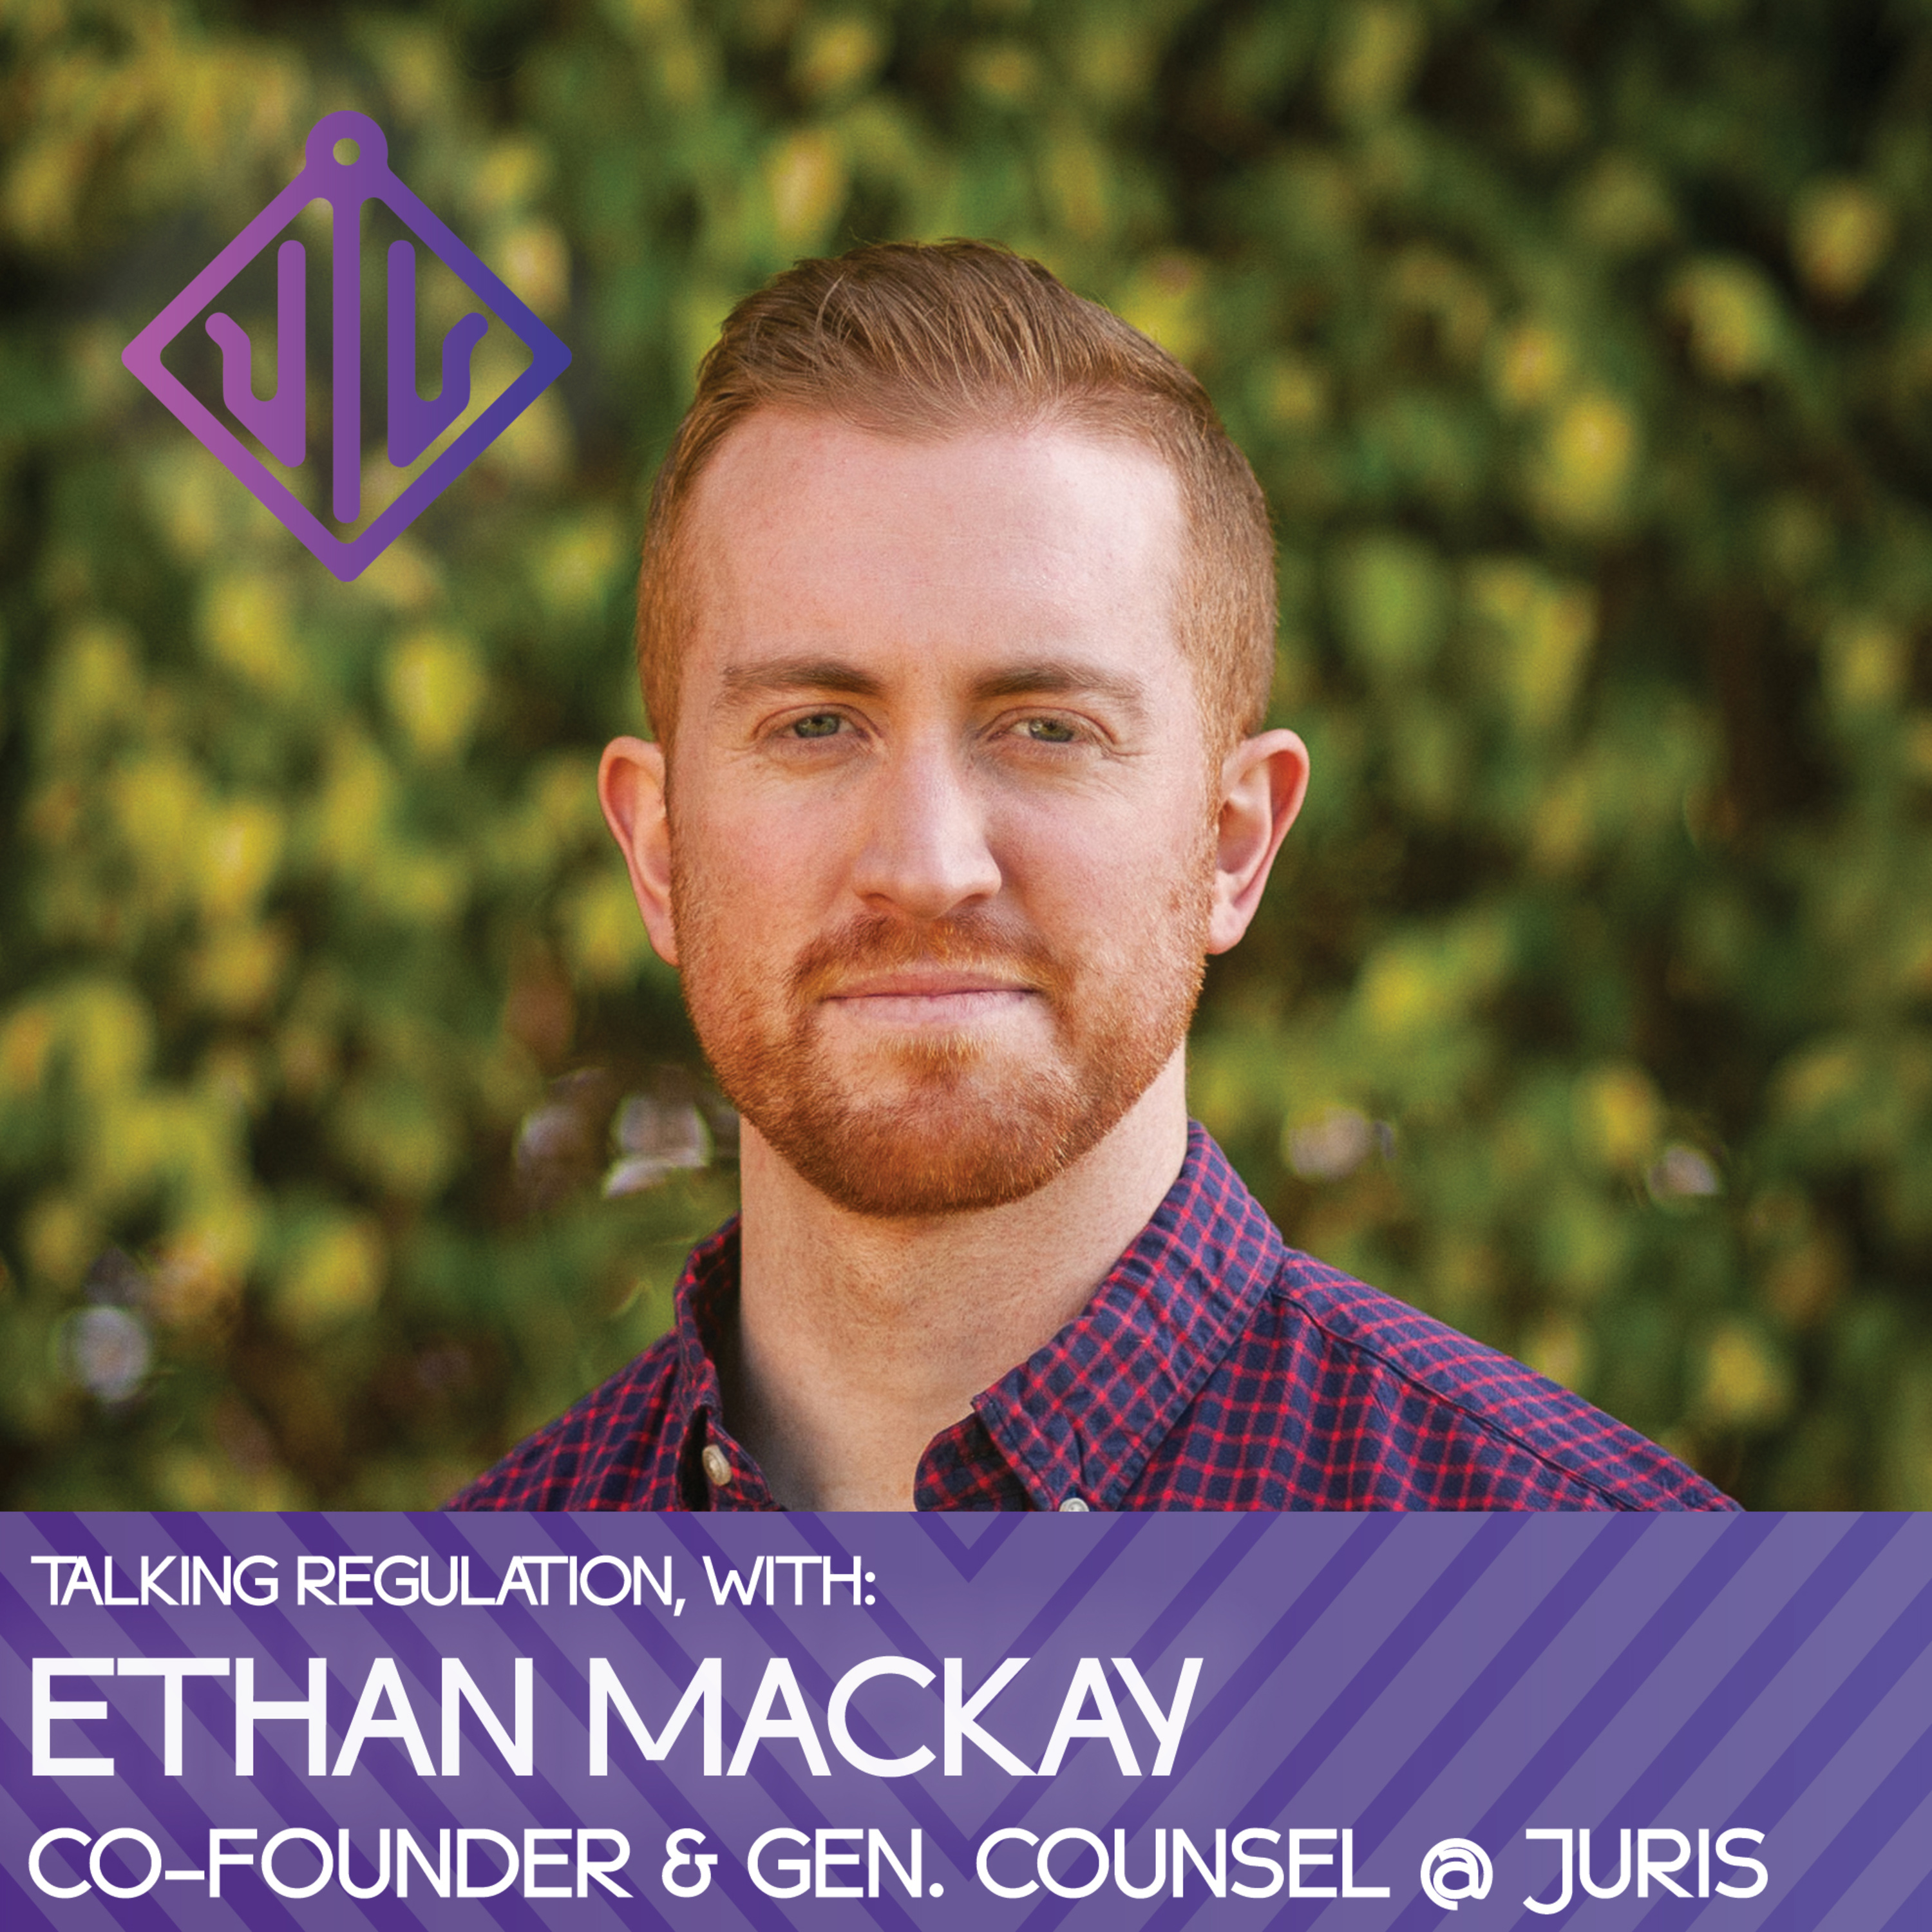 003 - Regulation of Free Speech on Social Media - with Juris General Counsel, Ethan Mackay